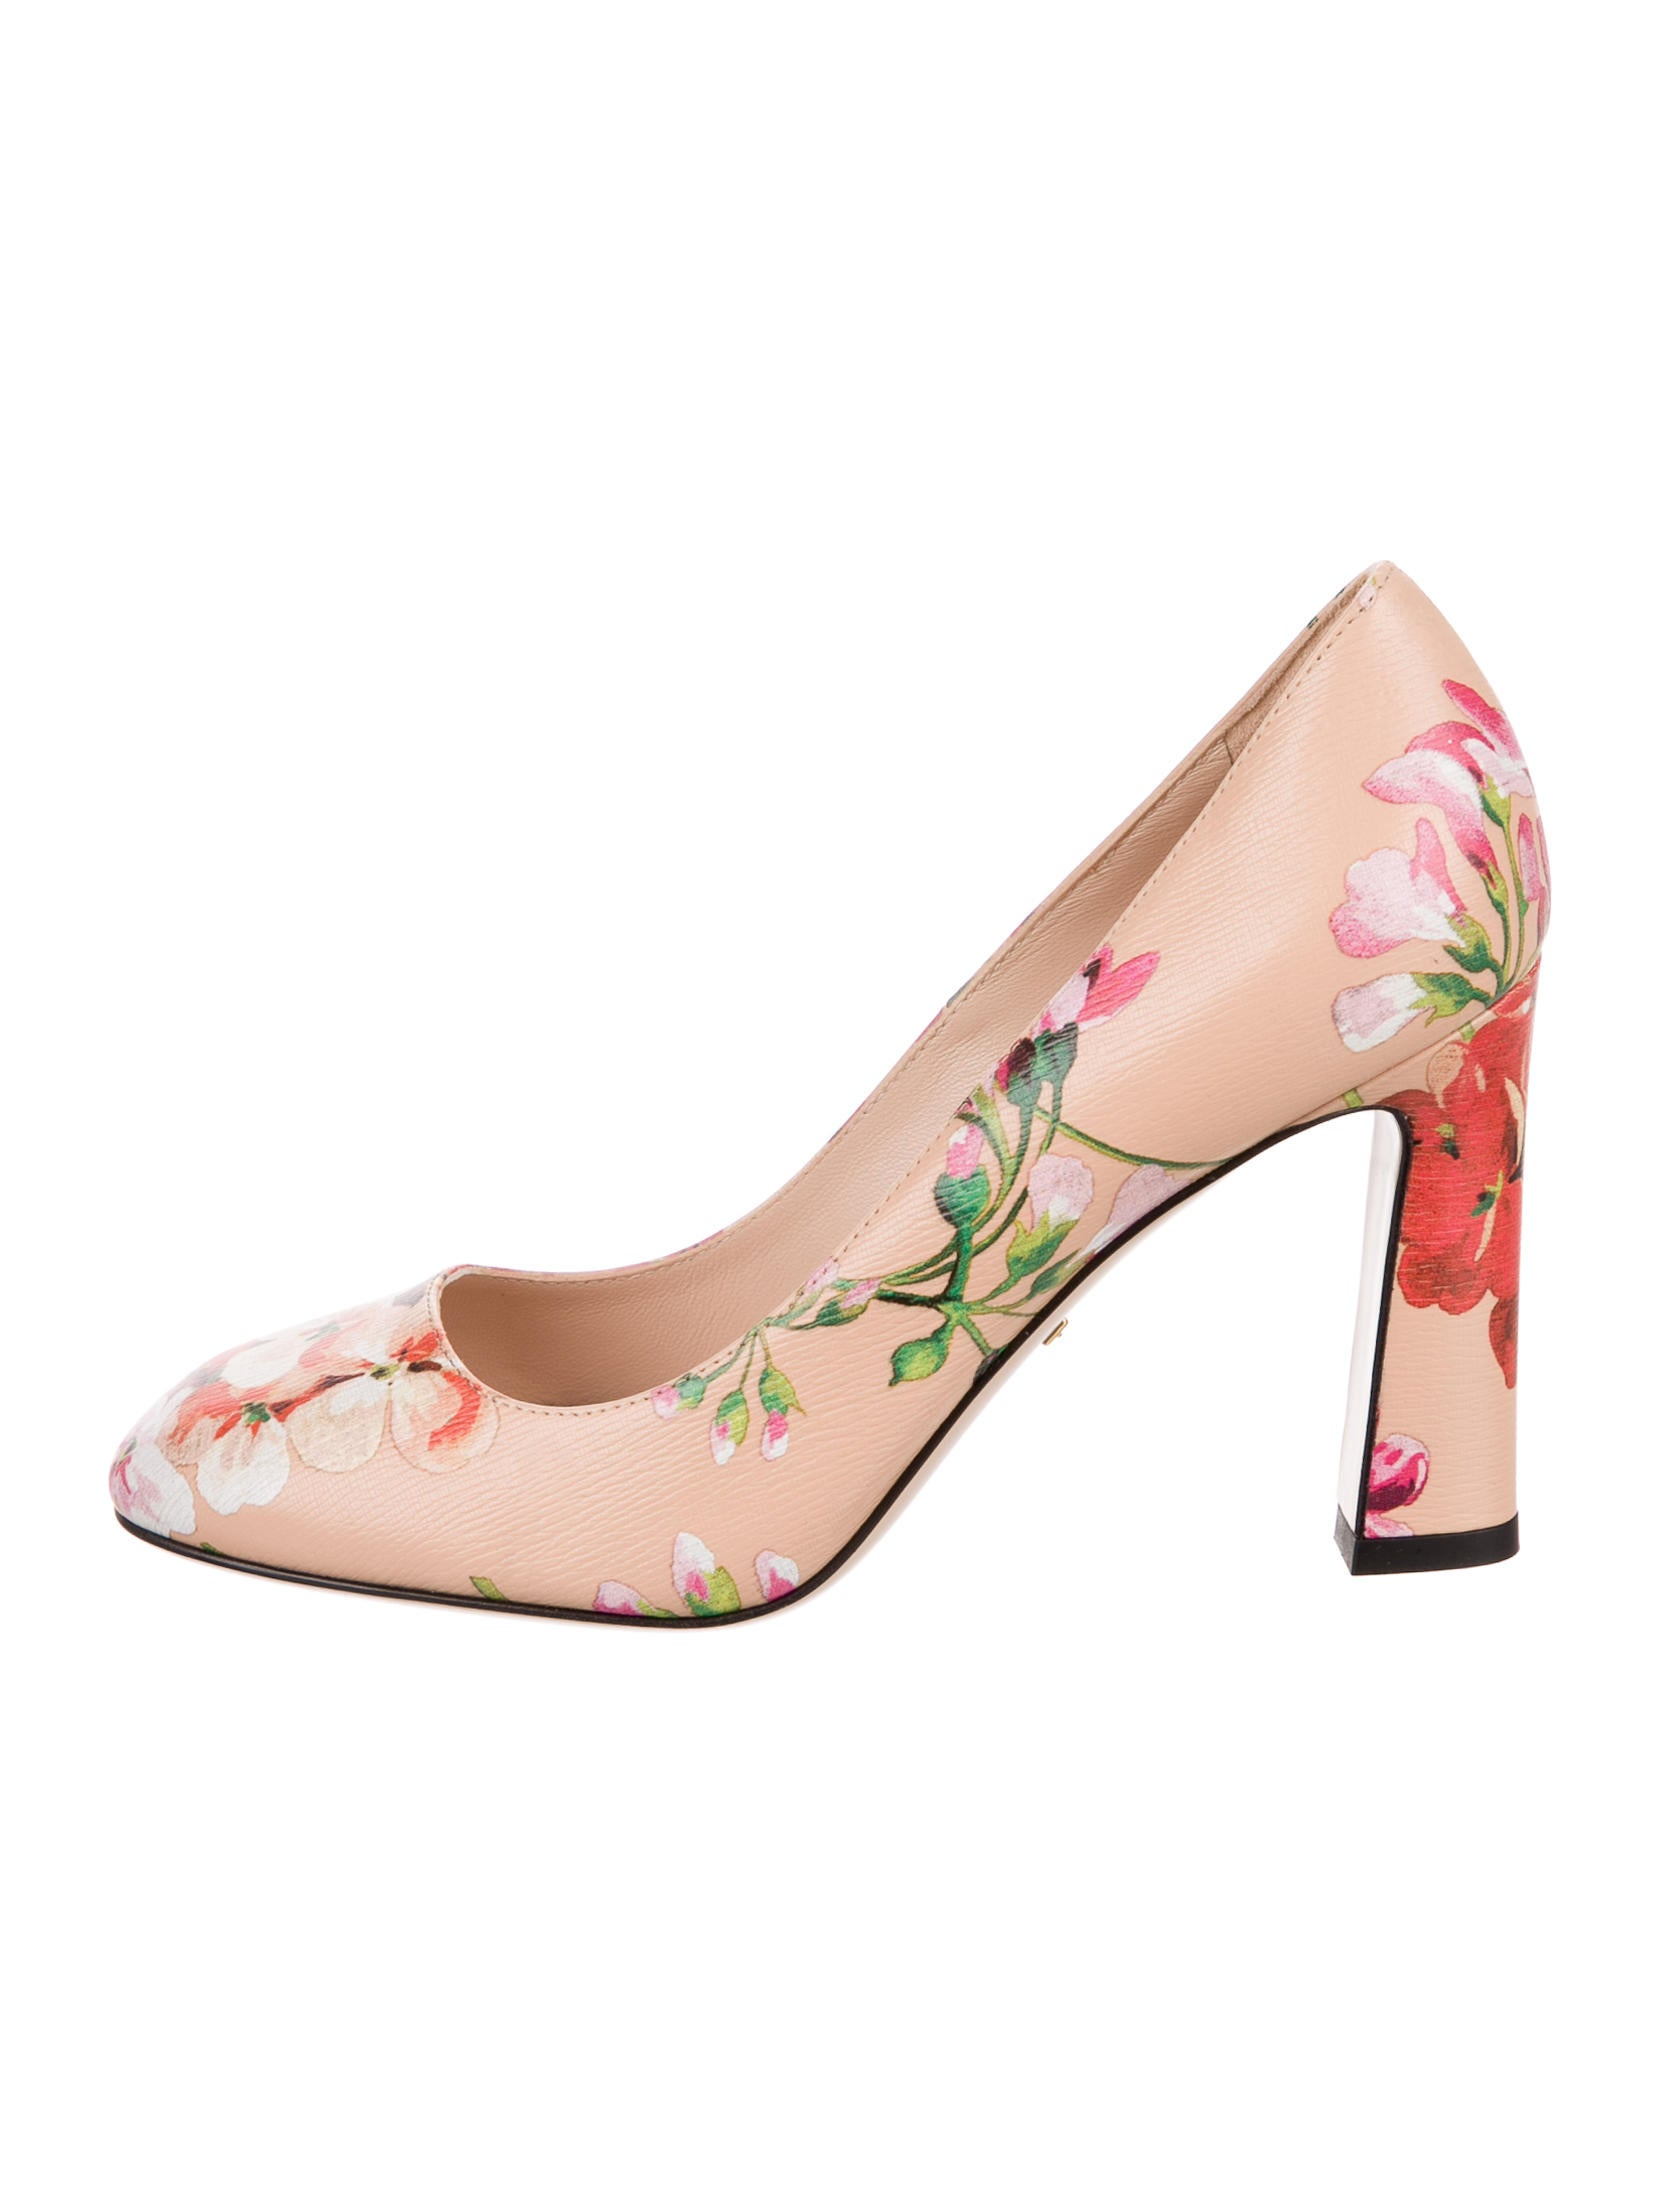 gucci 2016 marine floral pumps - shoes